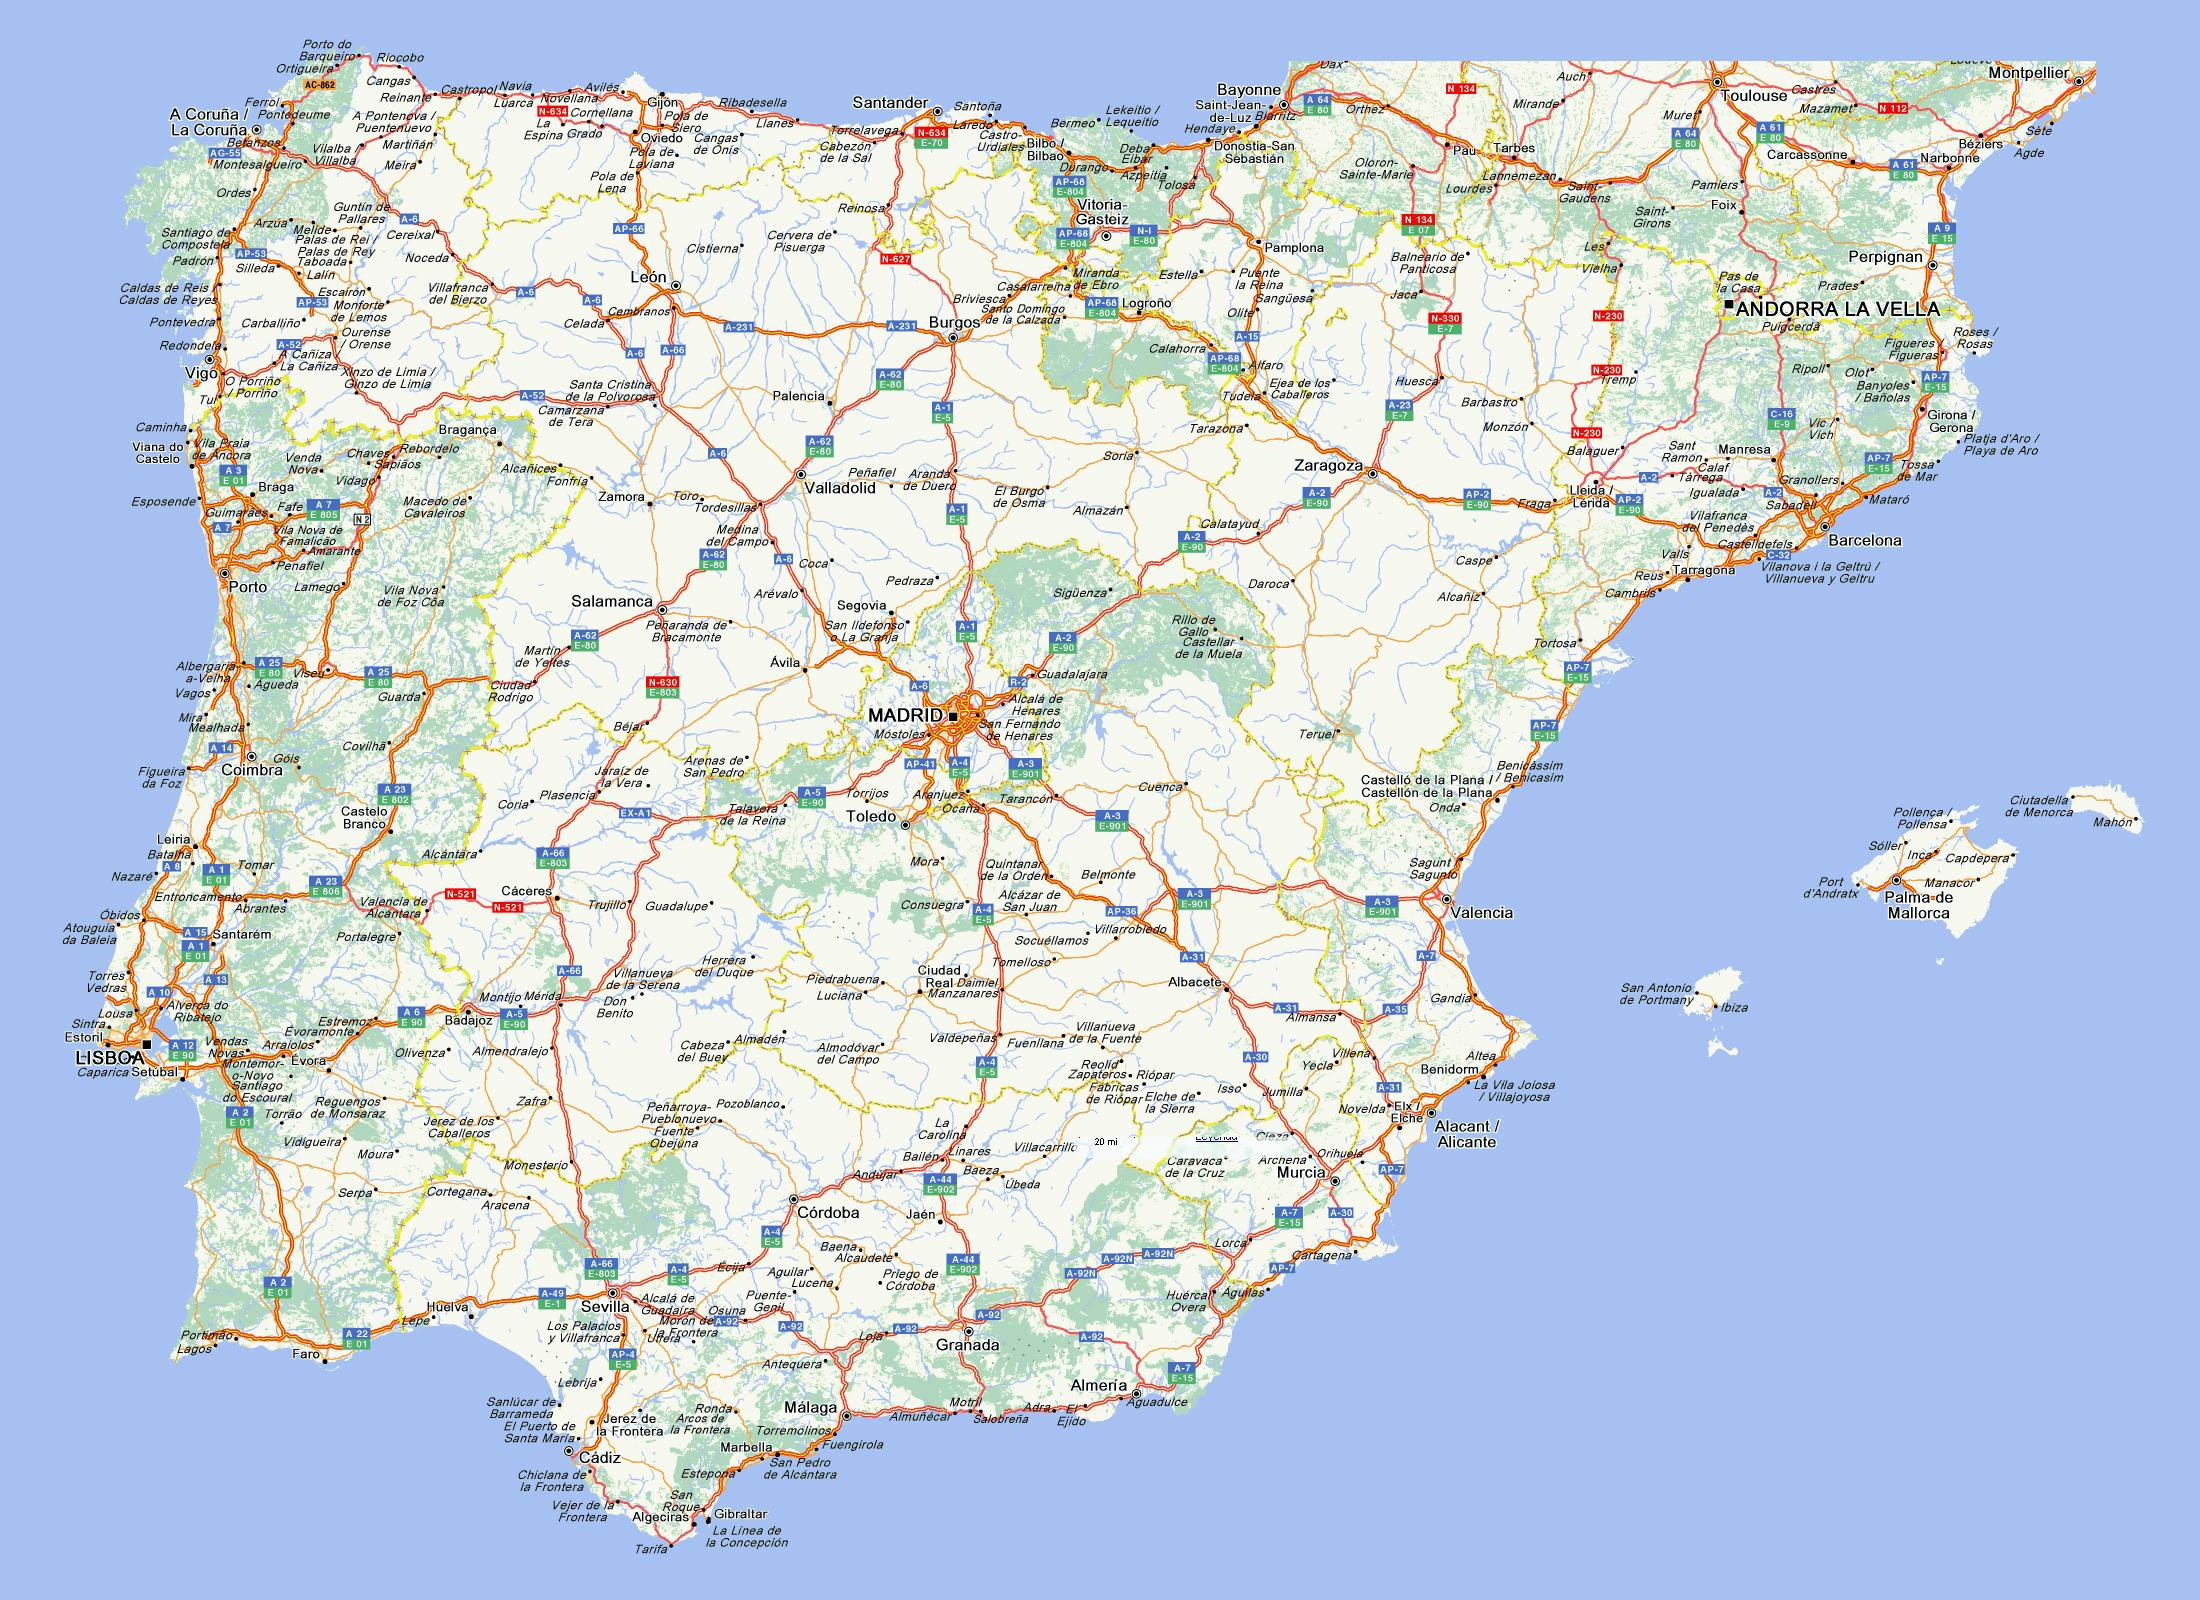 Road Map Of Spain.Road Map Of Spain Road Map Of Spain With Cities Southern Europe